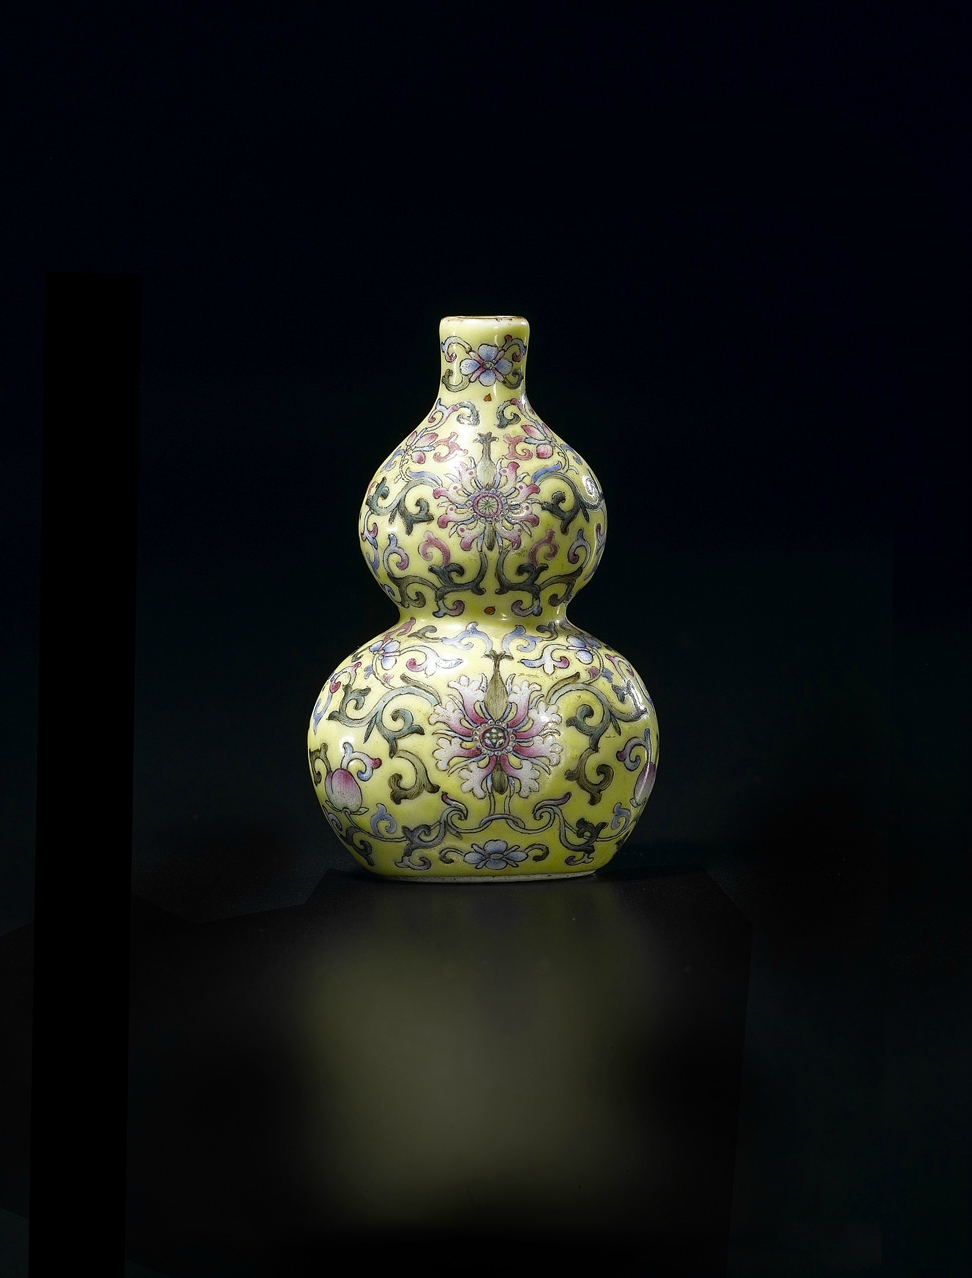 Fine Chinese Miniature Famille Rose Double Gourd Vase, Six character Jiaqing mark and of the period (1796-1820). Dimensions: (Height) 7.5 cm (3 in.). Provenance: Allan Gibson Hughes (d.1938), of Chalfont, The Mount, Shrewsbury. Photo courtesy Woolley & Wal